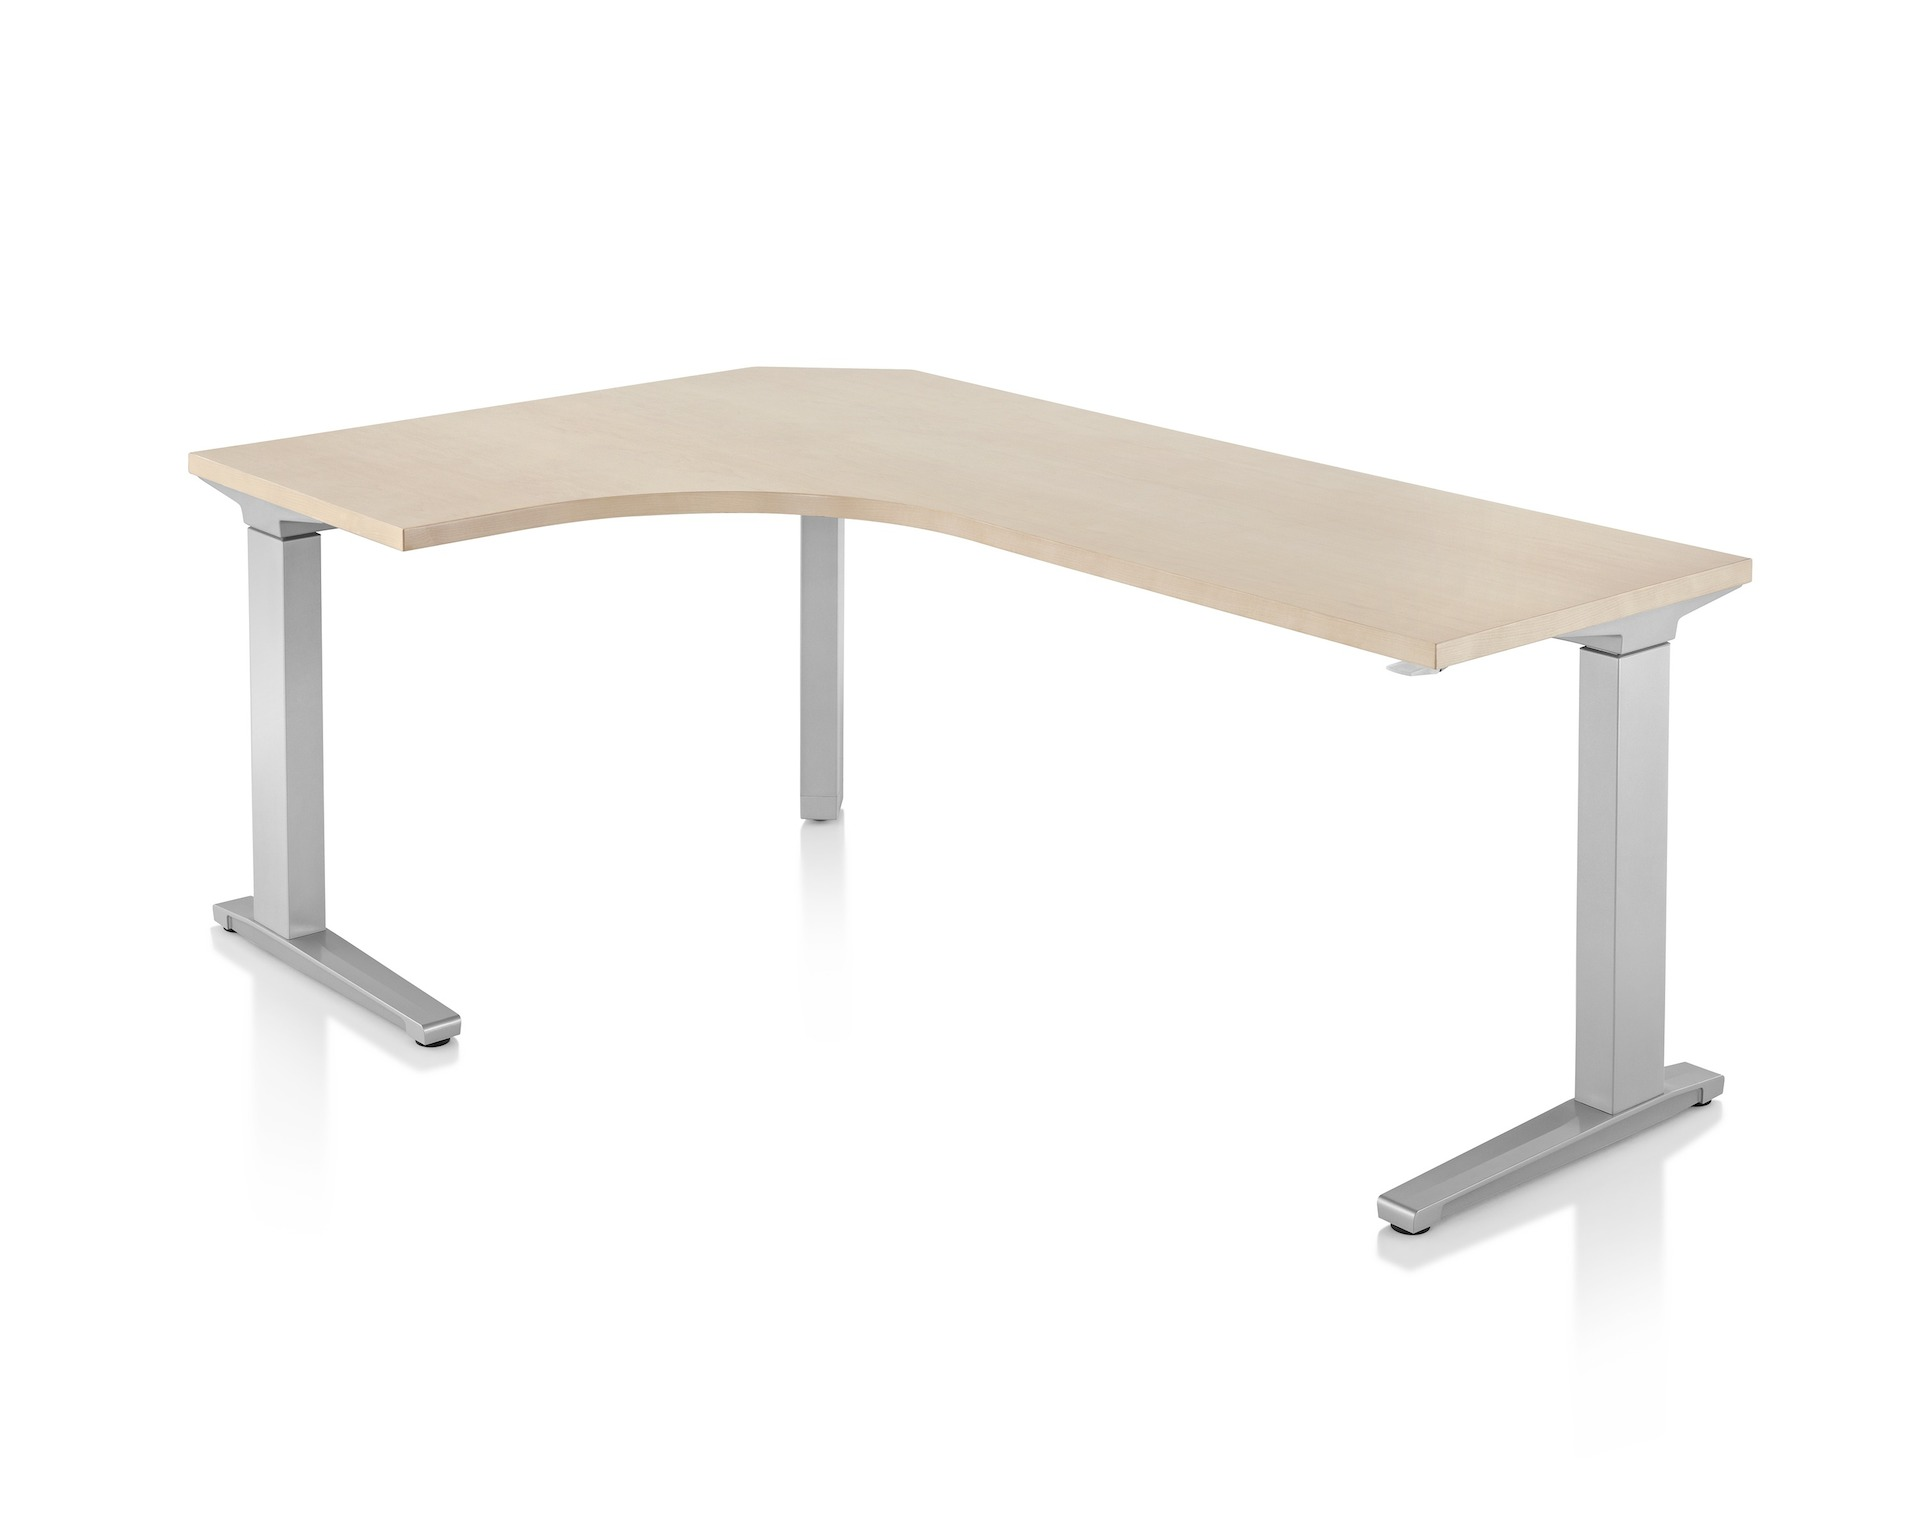 Renew Sit To Stand 90 Degree Extended Corner Table, C Foot